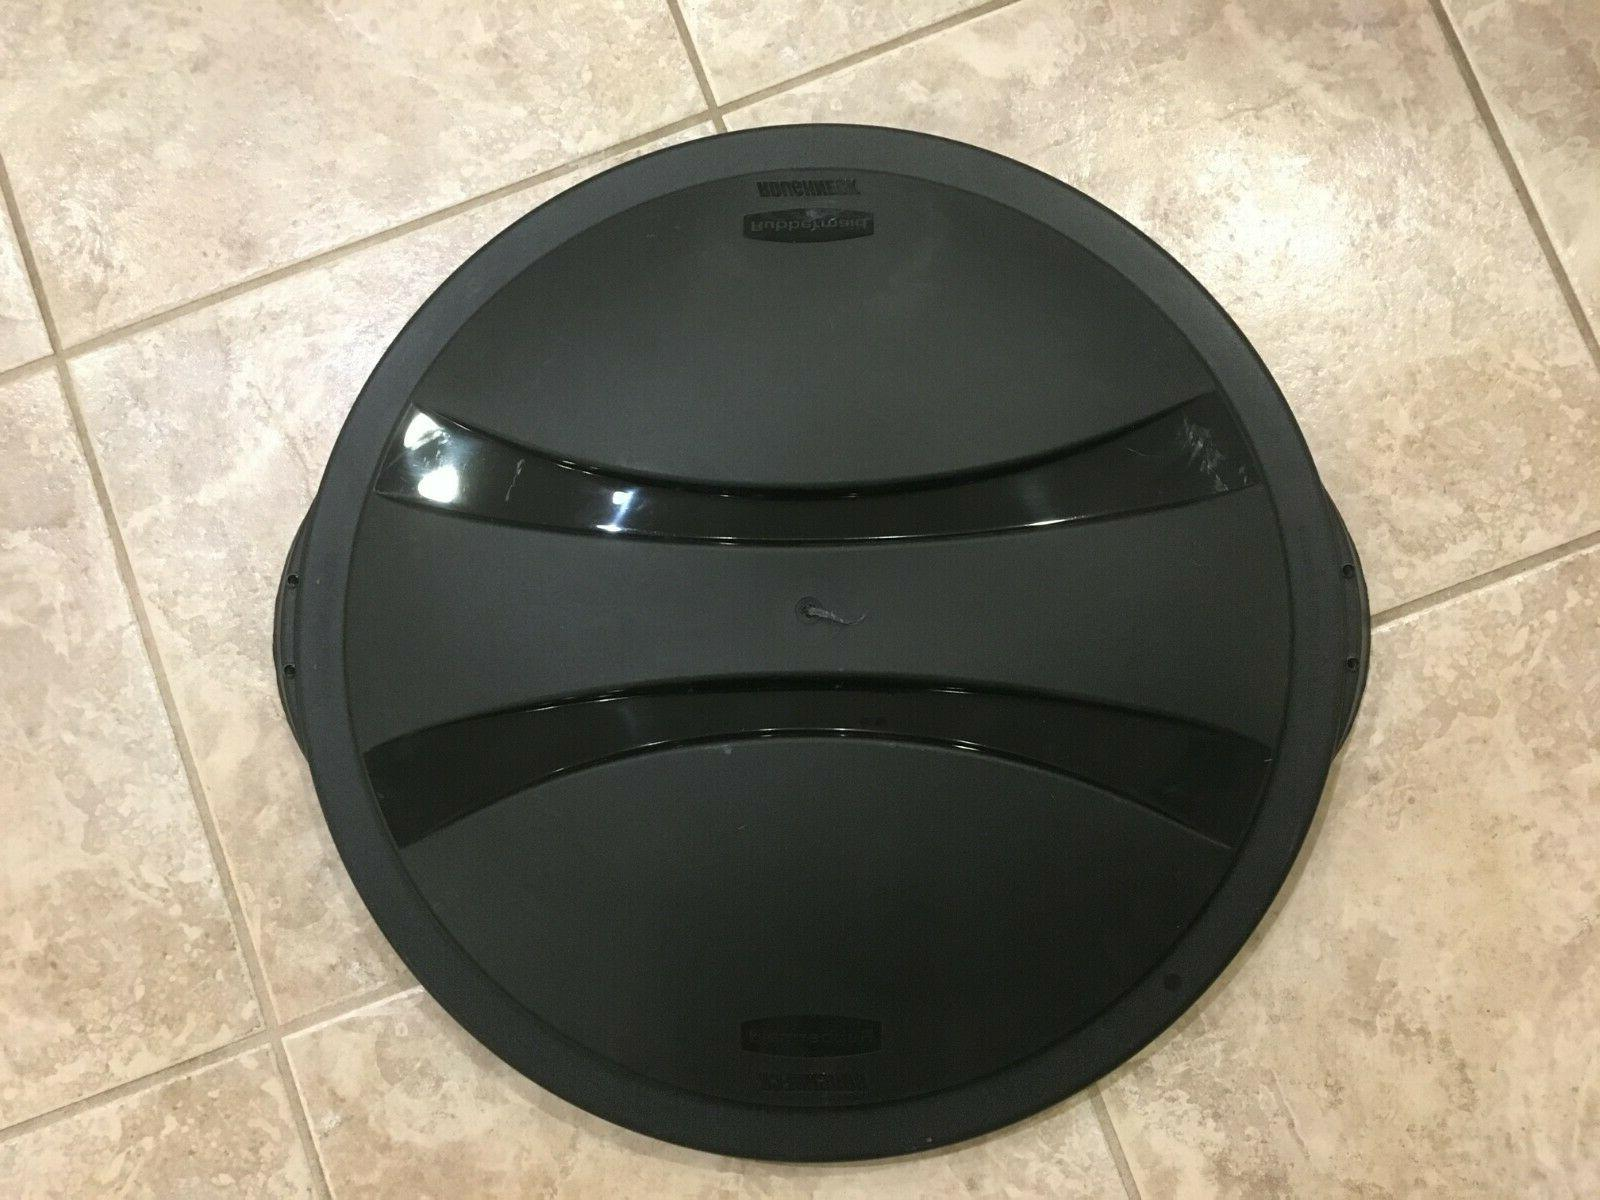 roughneck round trash can lid 32 gallon